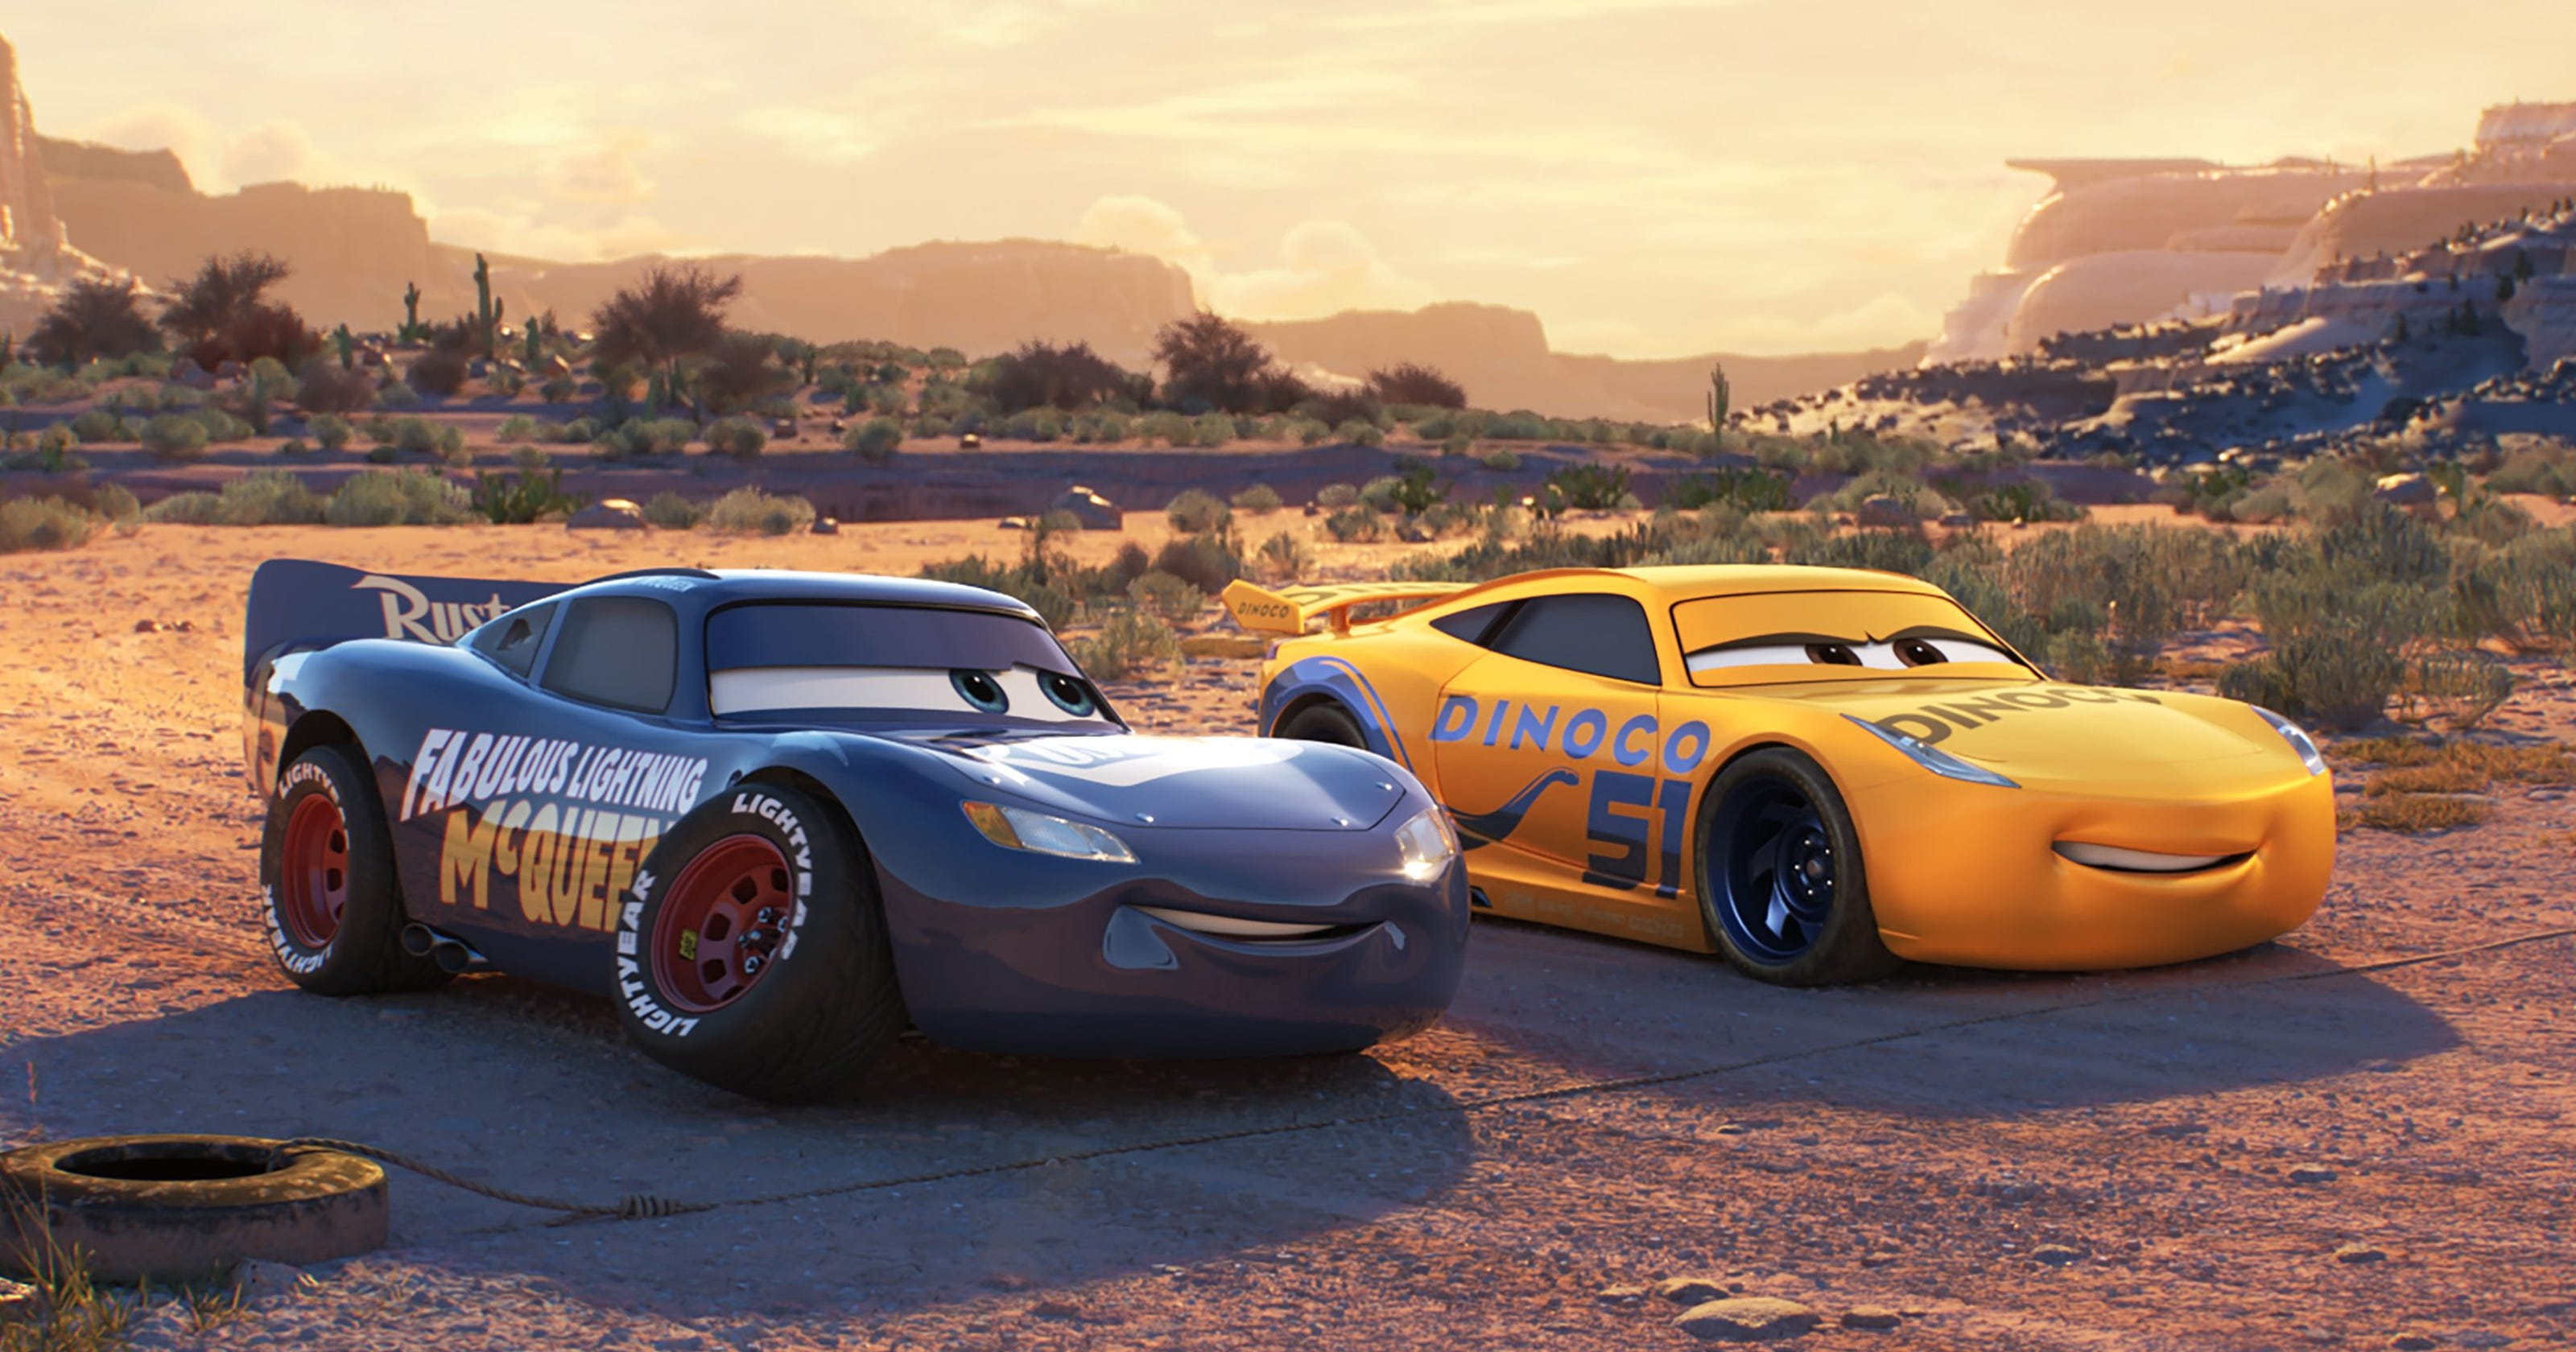 Cars 3': Why Lightning McQueen got a new paint job (spoilers)